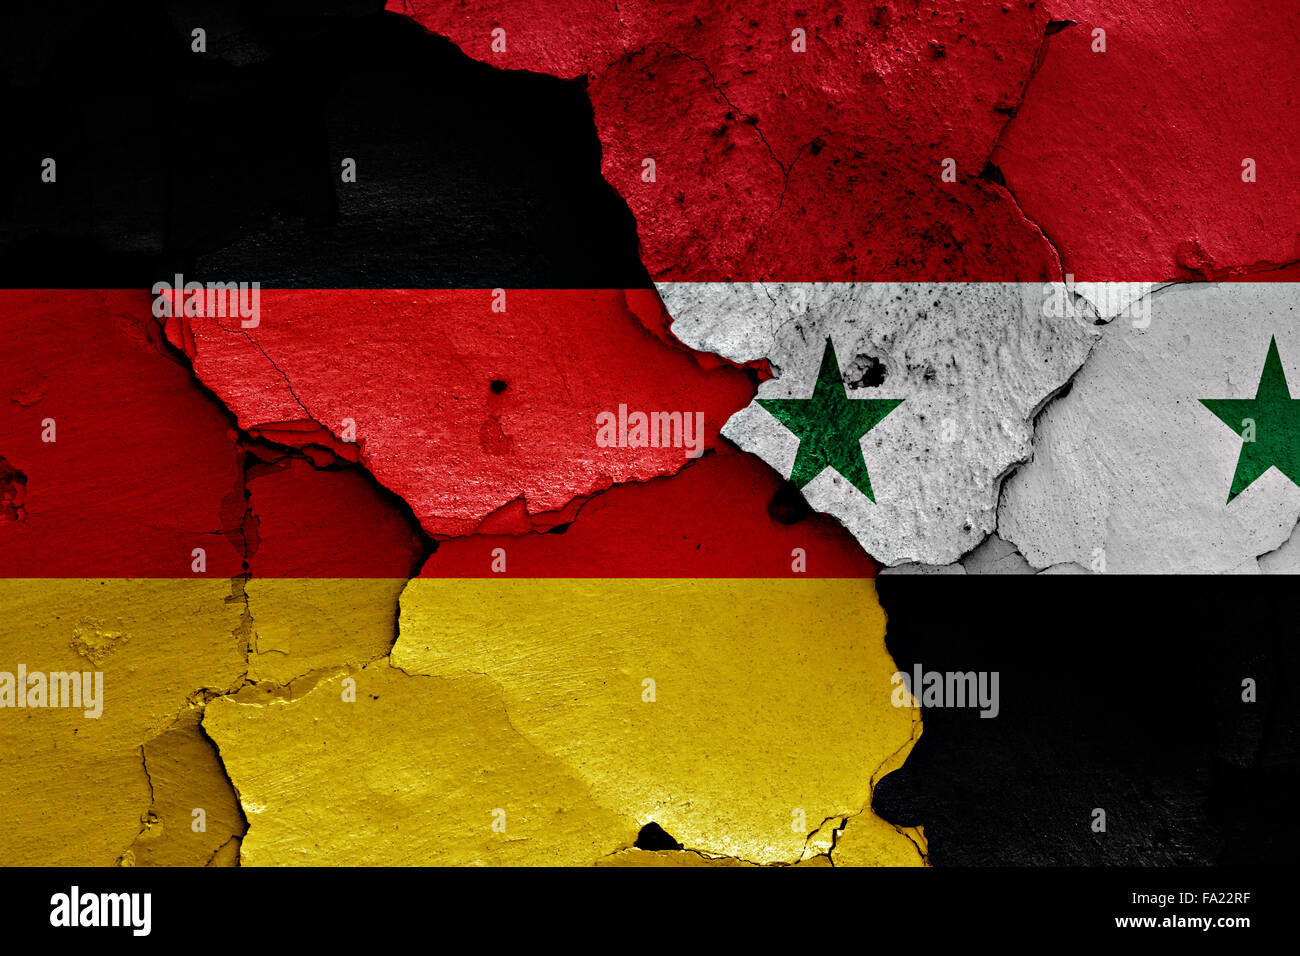 Image result for Germany and Syria